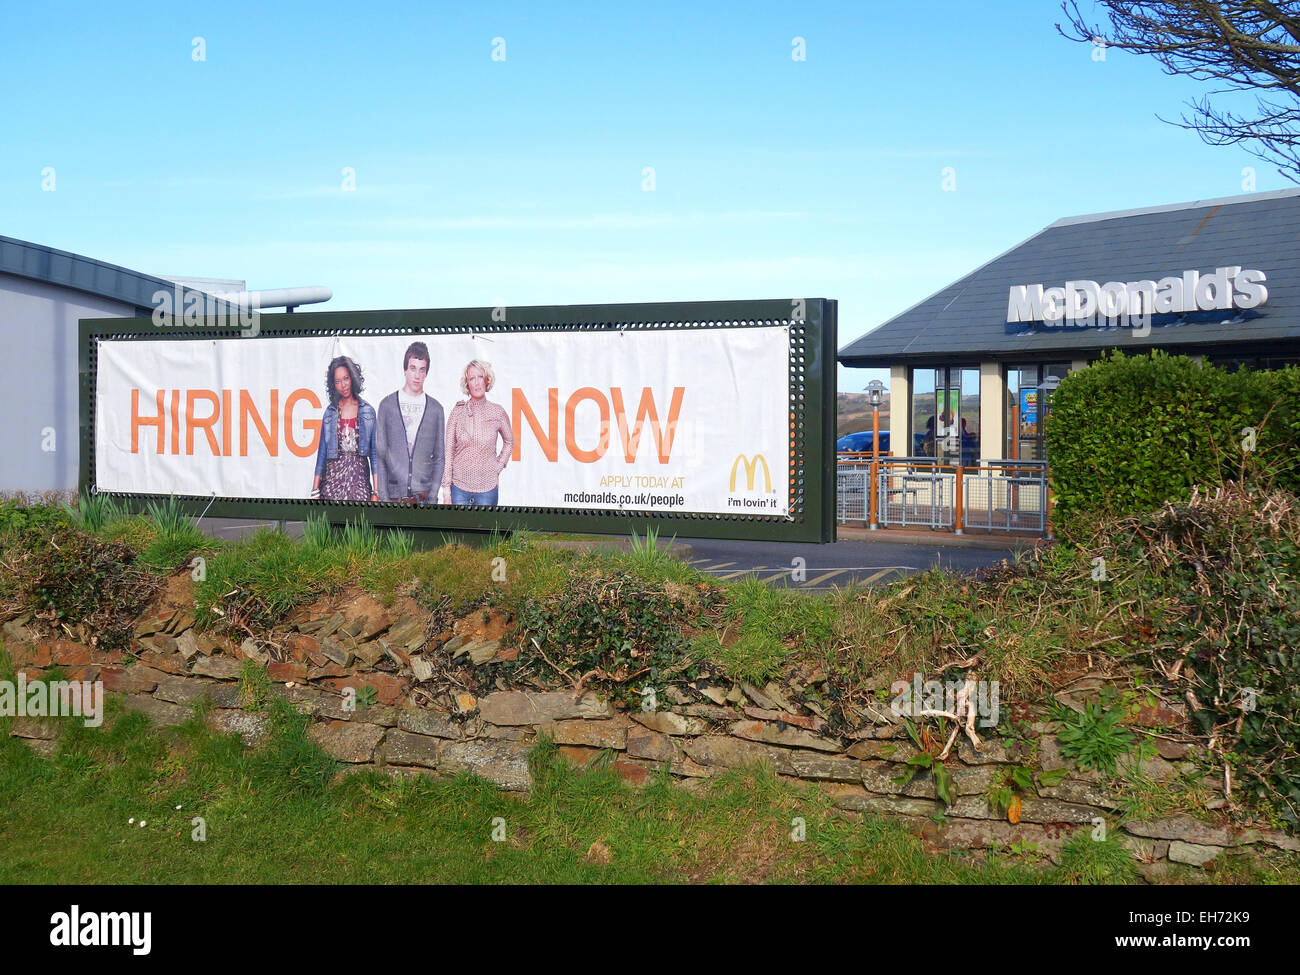 A ' Hiring Now ' sign outside a Mcdonalds restaurant in Cornwall, UK - Stock Image